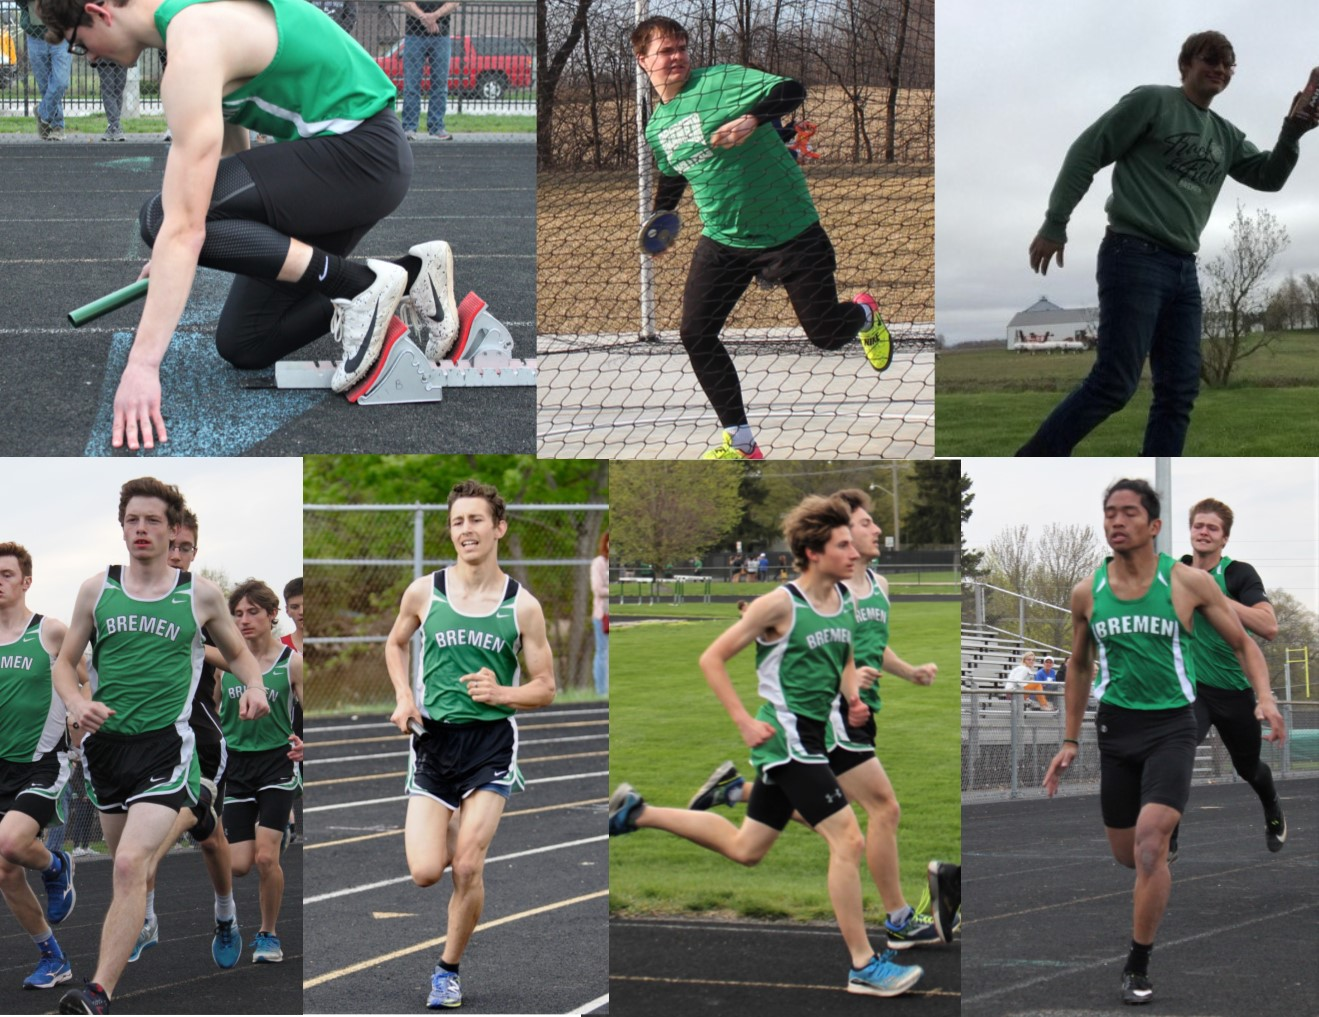 Senior Final Call – Zack, Bobby, Evan, Aaron, Seth, Noah and Kyle